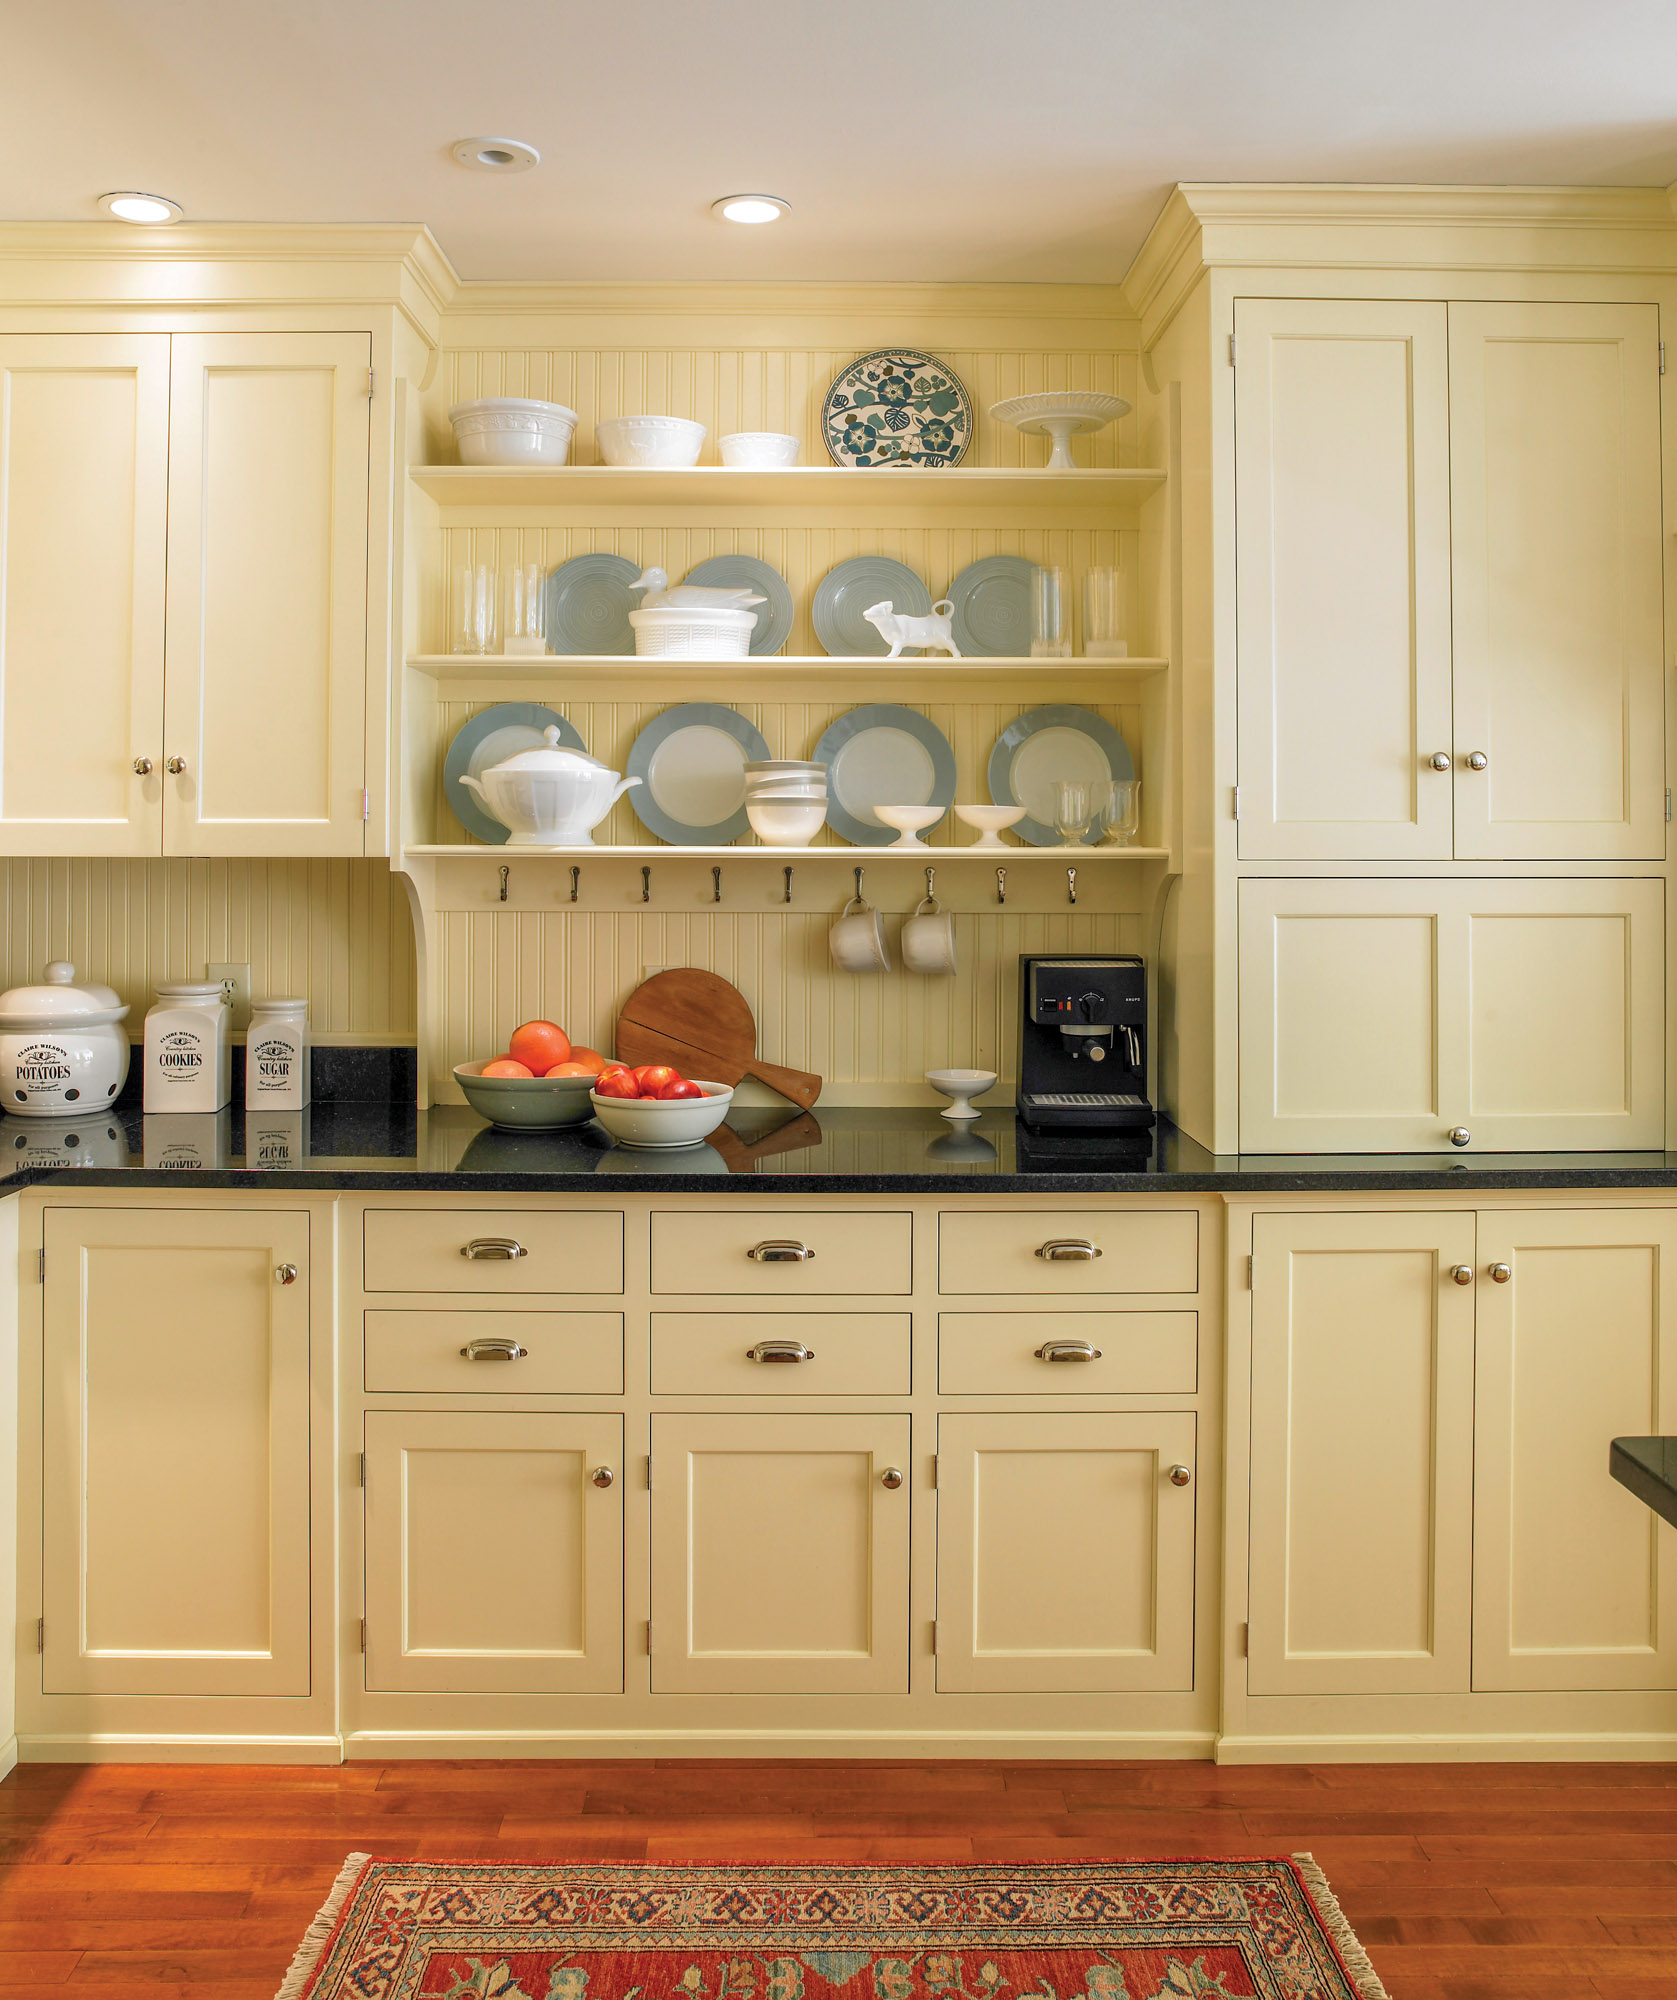 Kennebec Company cabinets